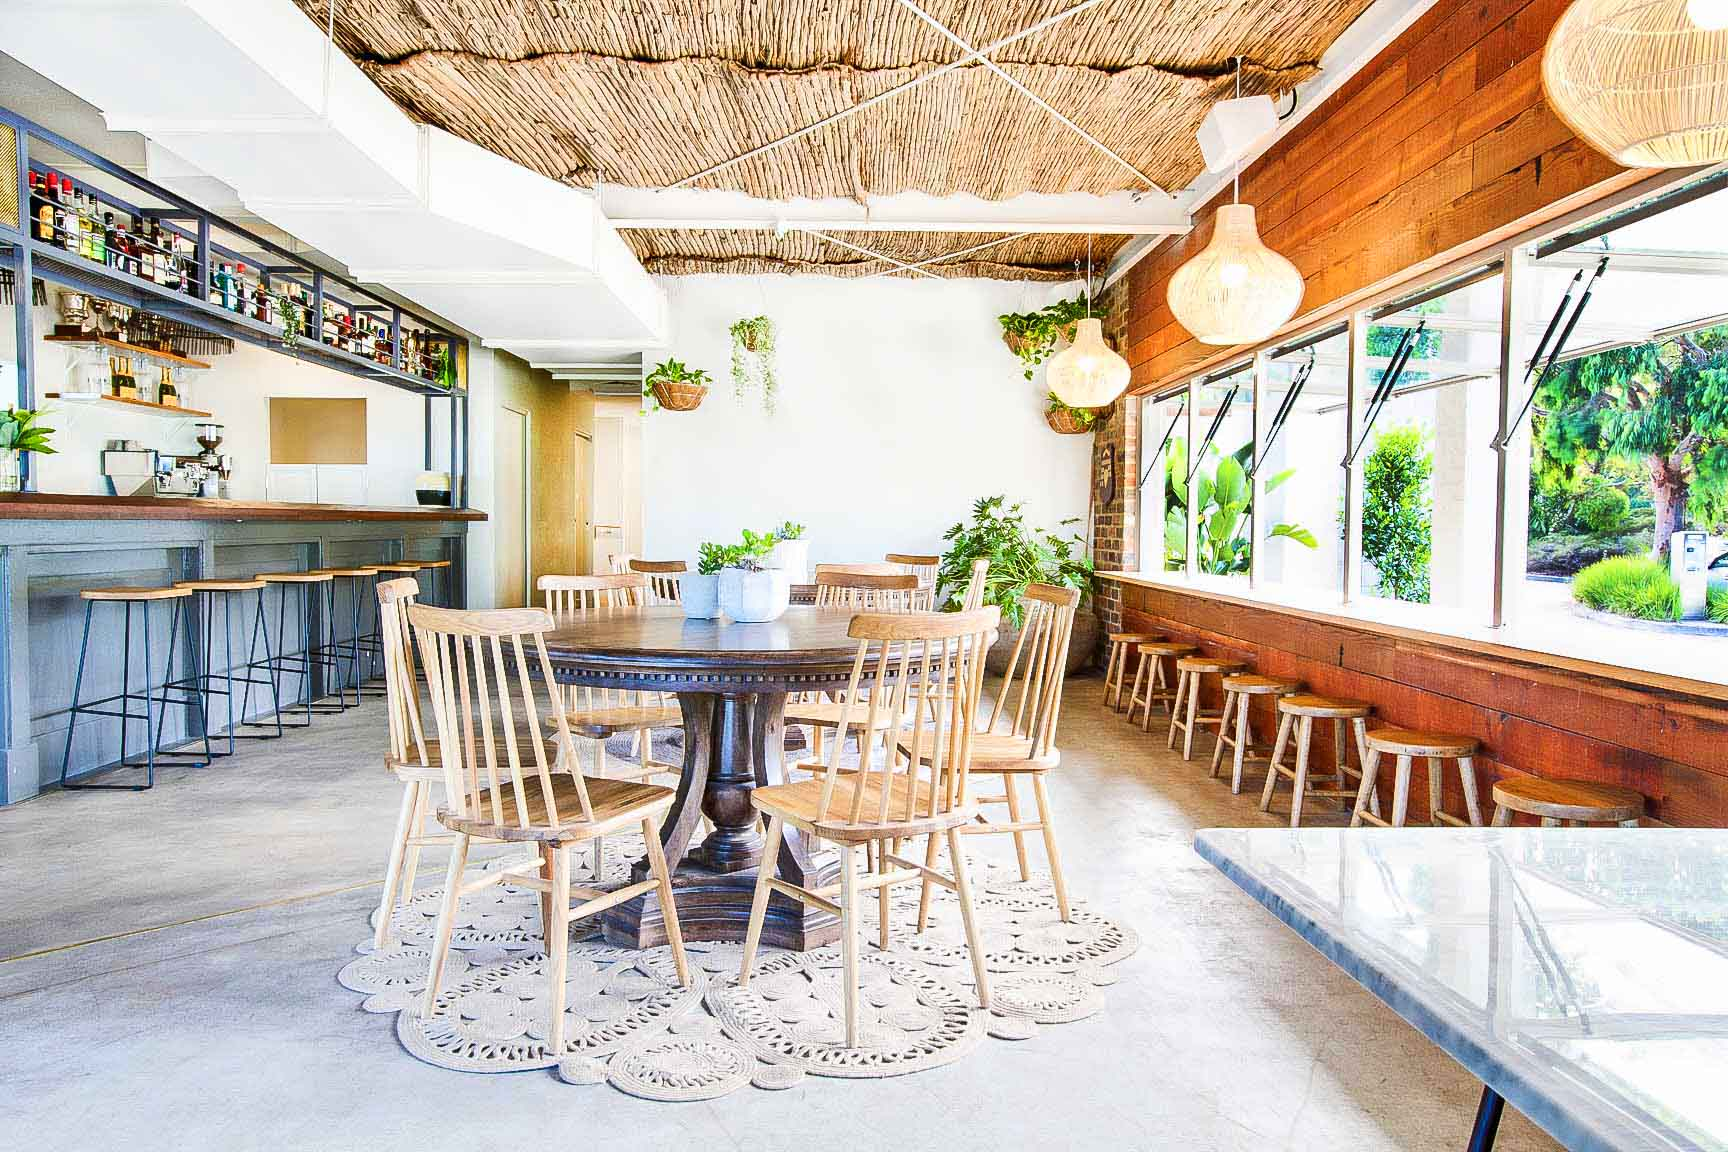 Greenfields-Albert-Park-Cafes-Function-Venues-Rooms-Melbourne-Best-Top-Good-Outdoor-Opening-Cocktail-Restaurants-Healthy-Eating-Article